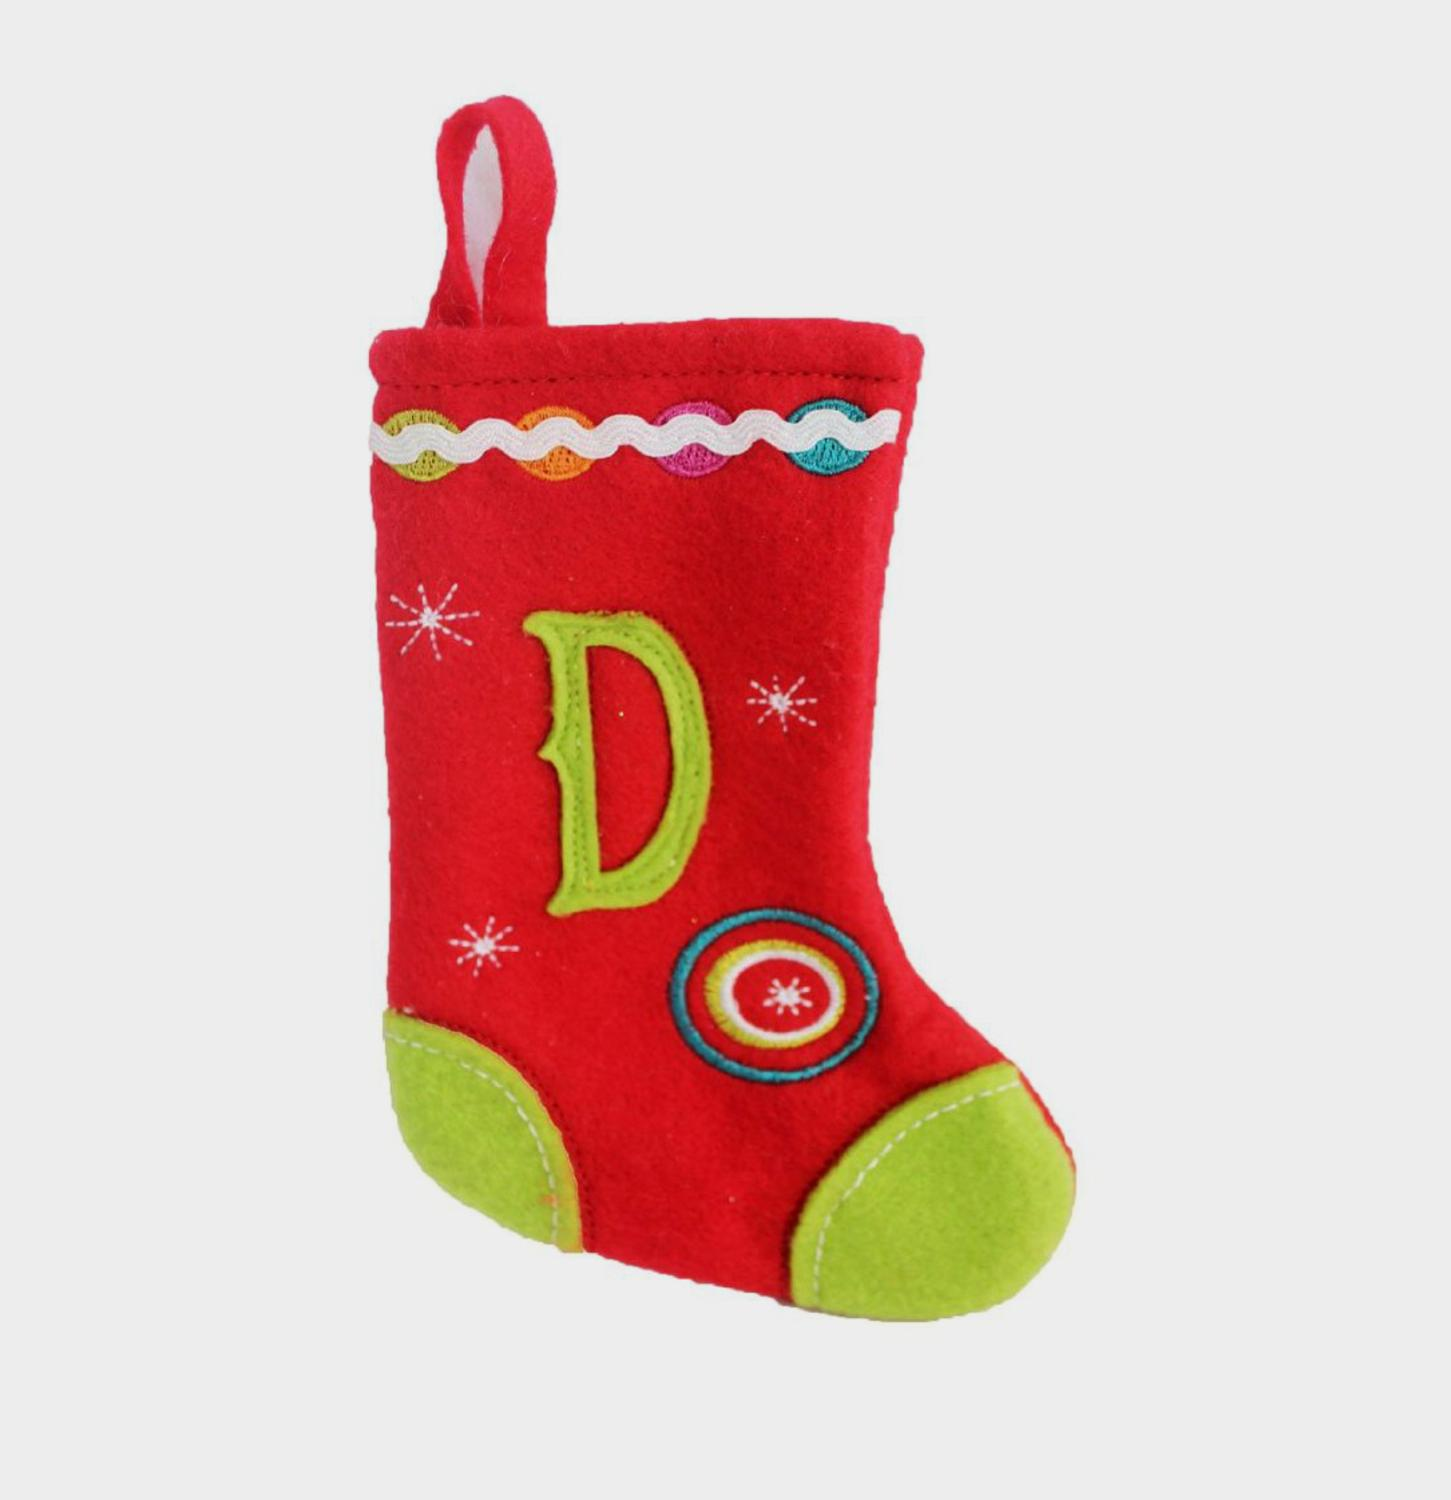 Letter Christmas Stockings.20 Traditional Red With White Cuff Plush Hanging Christmas Stocking